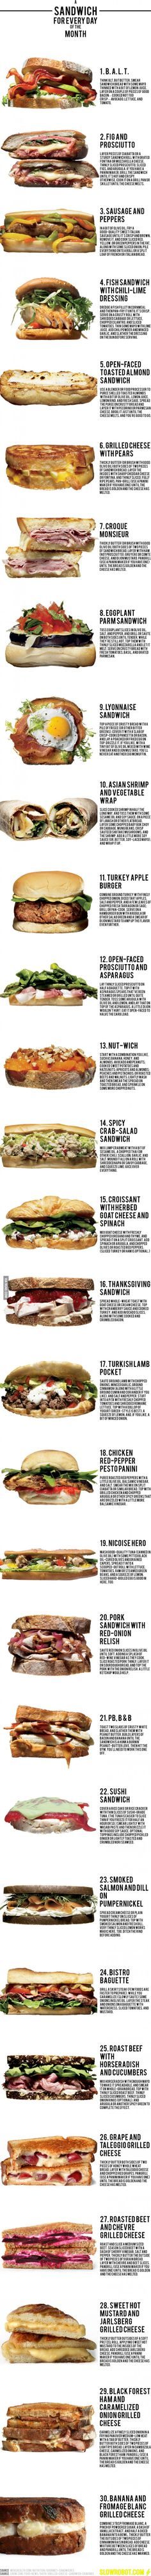 So you guys like sandwiches. Well, here you go.